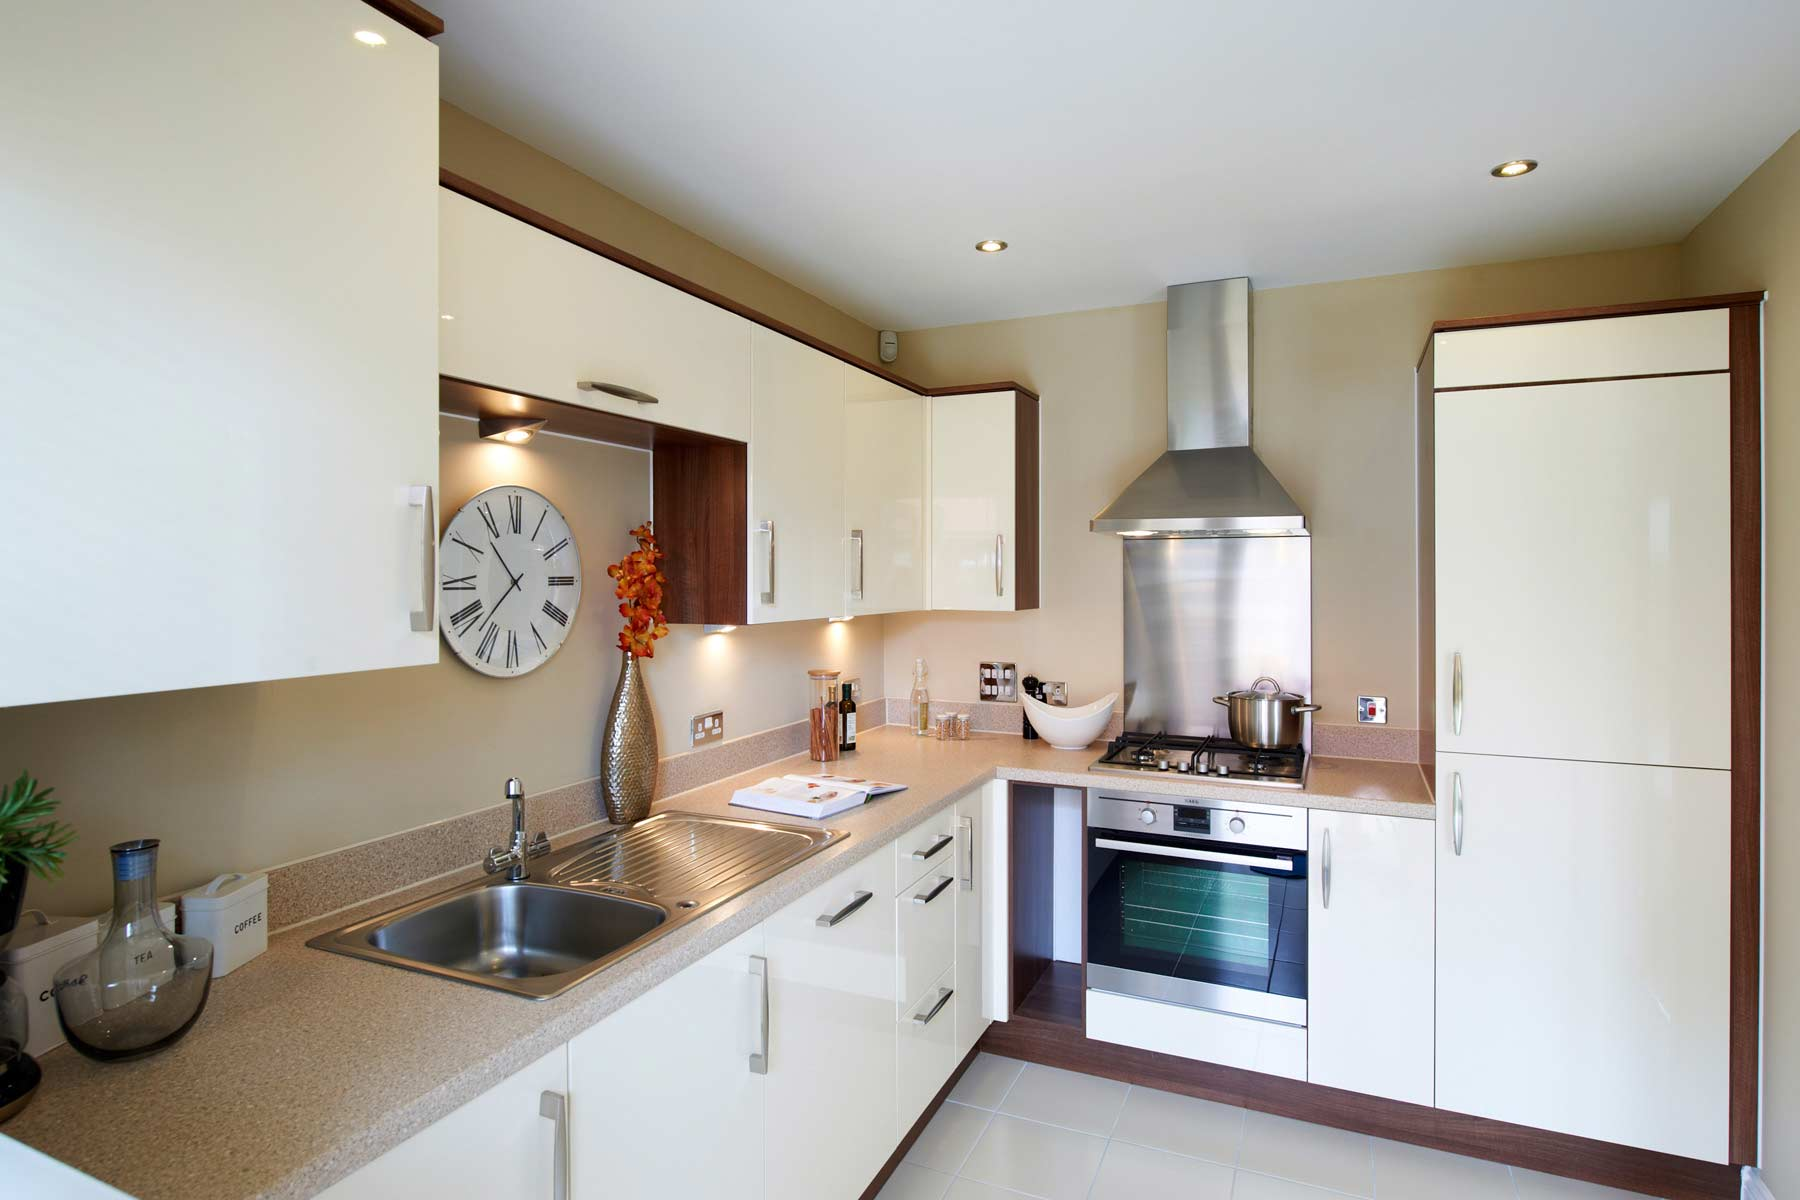 A typical Taylor Wimpey kitchen.